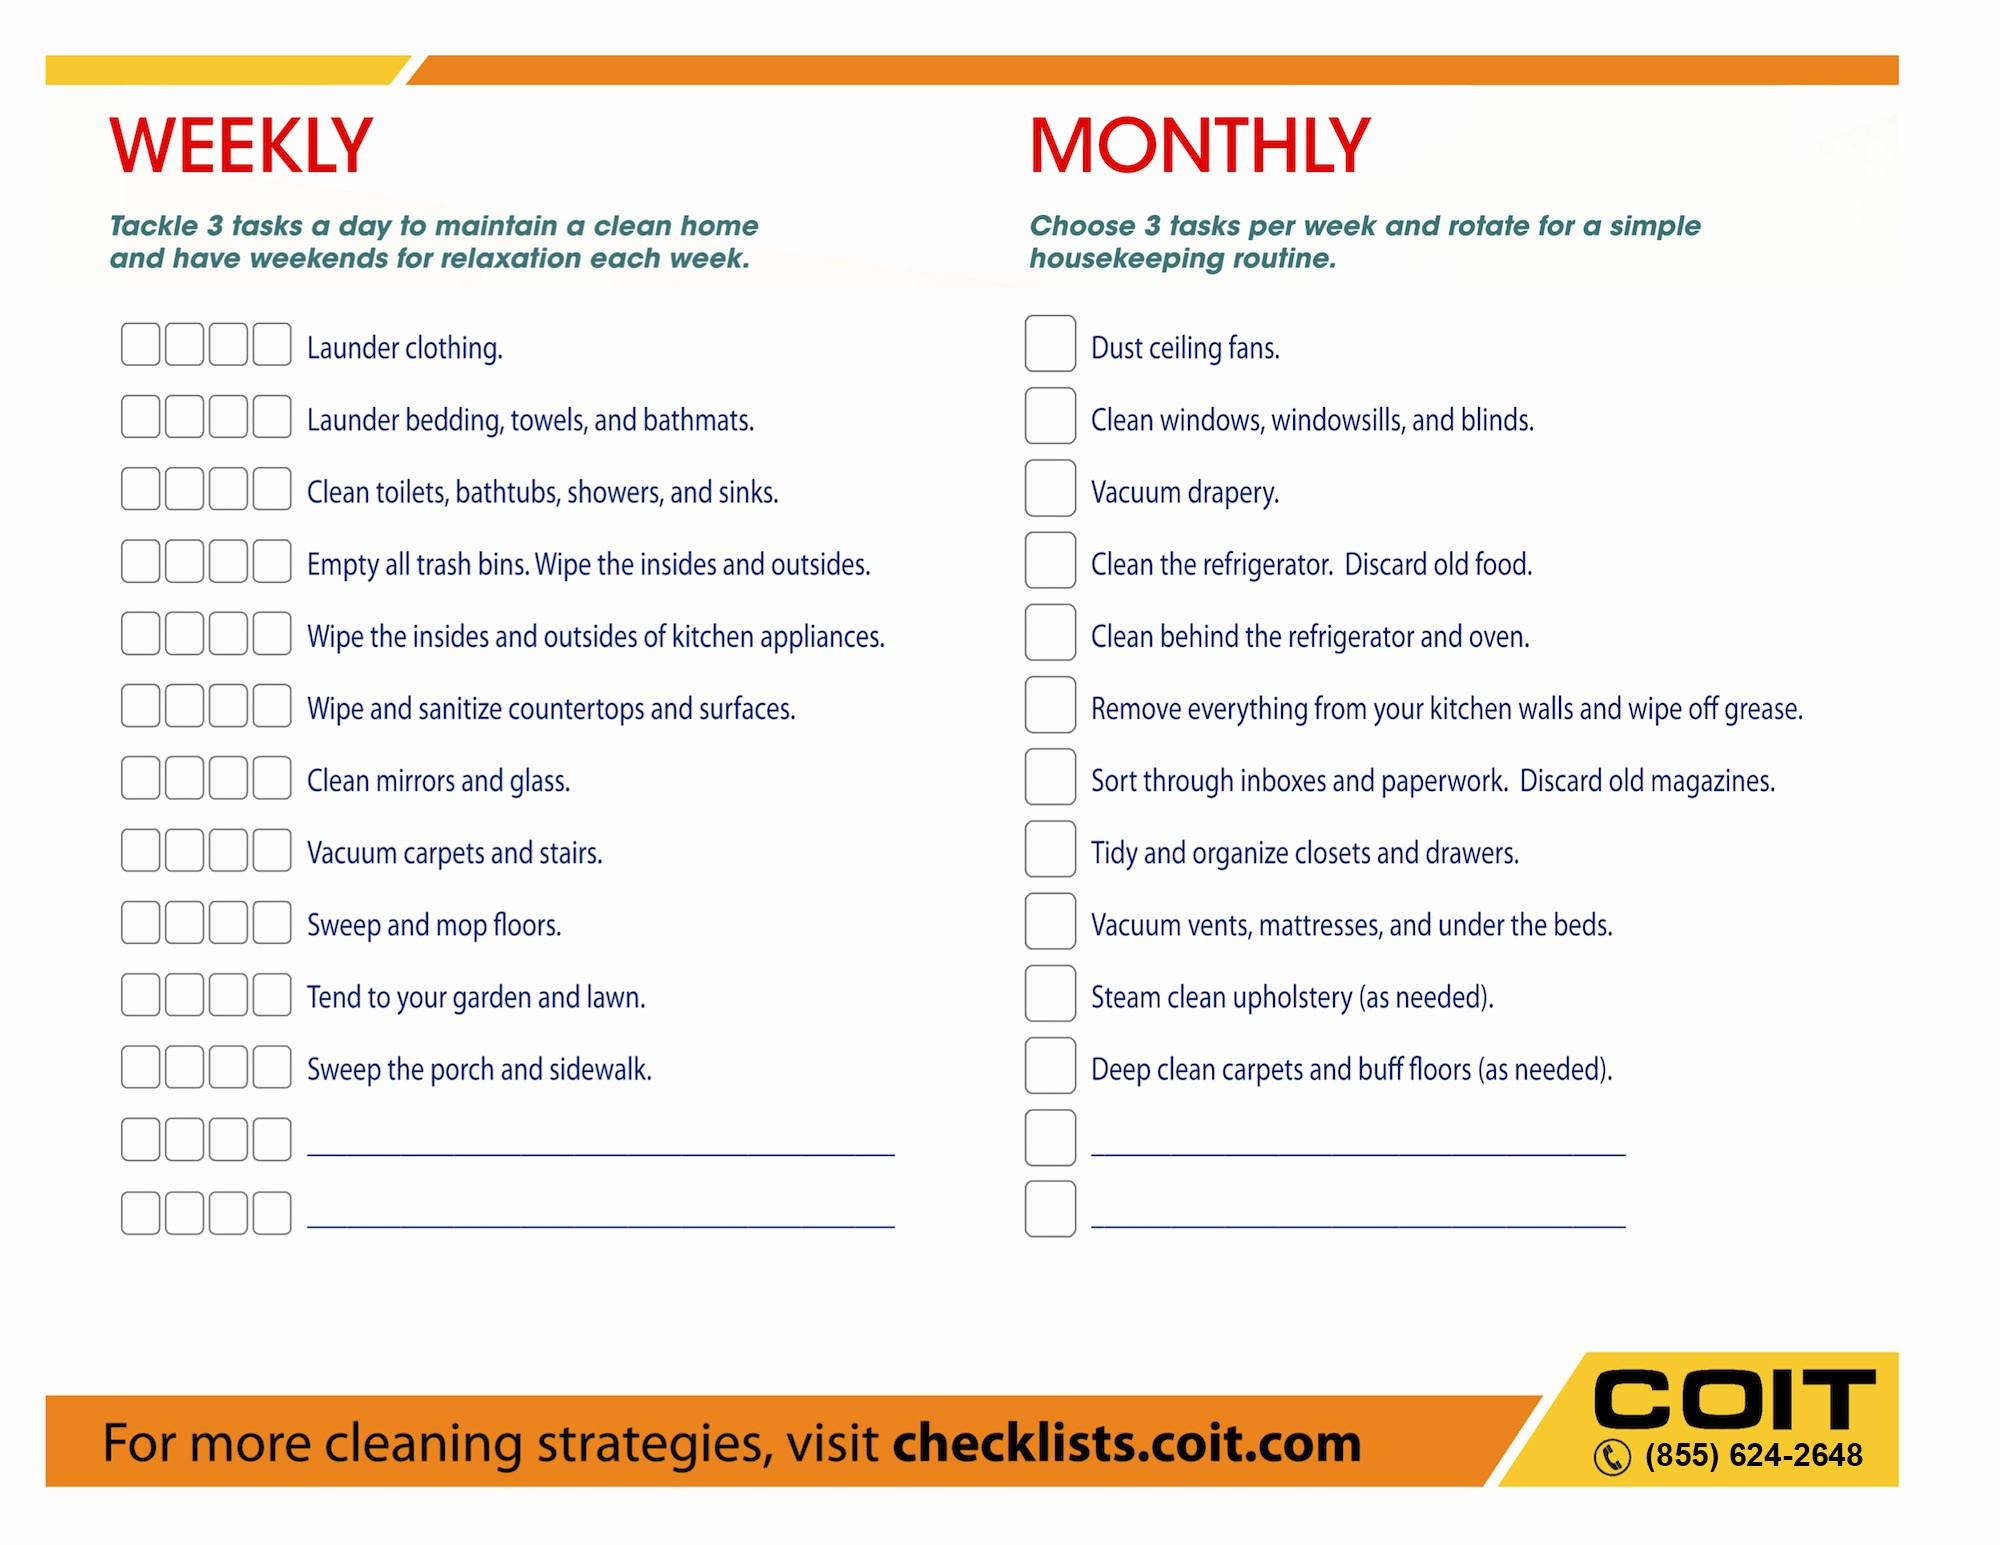 Monthly House Cleaning Schedule Template Inspirational Weekly and Monthly House Cleaning Checklist